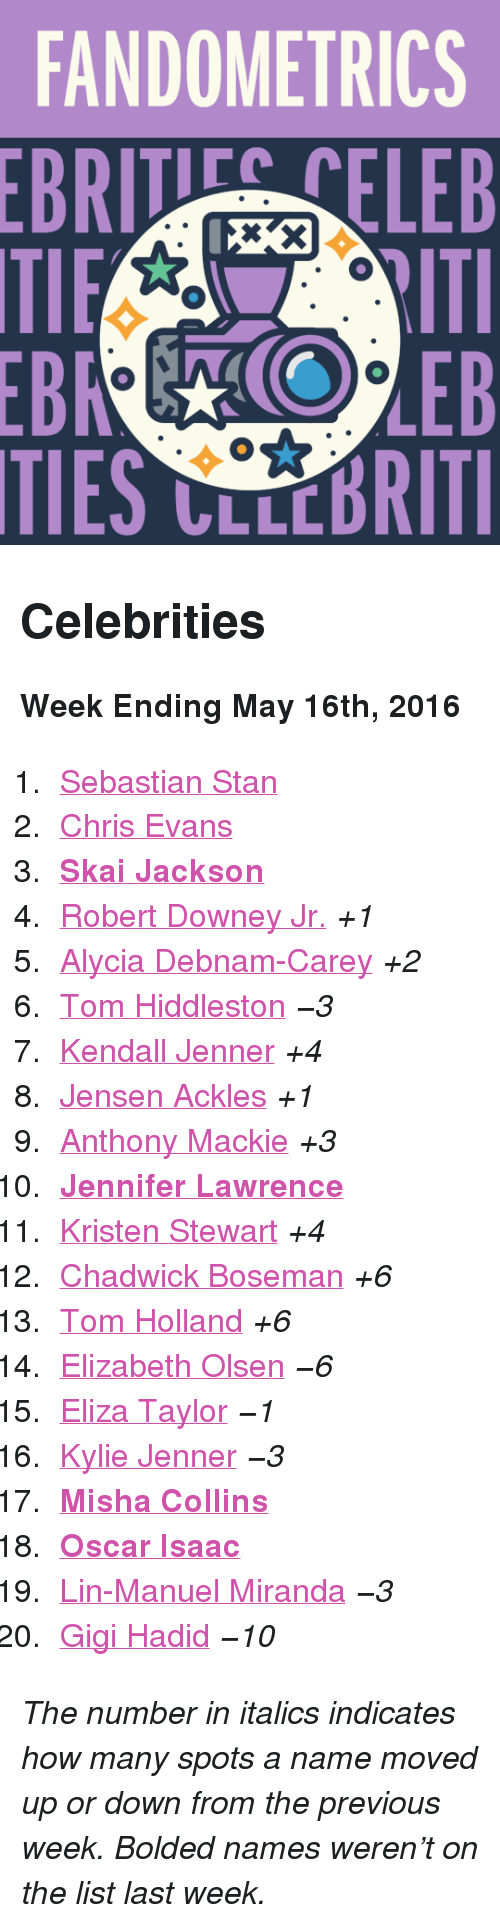 """Kristen Stewart: FANDOMETRICS  BRTELEB  TIES CLLCBRITI <h2>Celebrities</h2><p><b>Week Ending May 16th, 2016</b></p><ol><li><a href=""""http://www.tumblr.com/search/sebastian%20stan"""">Sebastian Stan</a></li>  <li><a href=""""http://www.tumblr.com/search/chris%20evans"""">Chris Evans</a></li>  <li><a href=""""http://www.tumblr.com/search/skai%20jackson""""><b>Skai Jackson</b></a></li>  <li><a href=""""http://www.tumblr.com/search/robert%20downey%20jr"""">Robert Downey Jr.</a><i>+1</i></li>  <li><a href=""""http://www.tumblr.com/search/alycia%20debnam%20carey"""">Alycia Debnam-Carey</a><i>+2</i></li>  <li><a href=""""http://www.tumblr.com/search/tom%20hiddleston"""">Tom Hiddleston</a><i><i>−3</i></i></li>  <li><a href=""""http://www.tumblr.com/search/kendall%20jenner"""">Kendall Jenner</a><i>+4</i></li>  <li><a href=""""http://www.tumblr.com/search/jensen%20ackles"""">Jensen Ackles</a><i>+1</i></li>  <li><a href=""""http://www.tumblr.com/search/anthony%20mackie"""">Anthony Mackie</a><i>+3</i></li>  <li><a href=""""http://www.tumblr.com/search/jennifer%20lawrence""""><b>Jennifer Lawrence</b></a></li>  <li><a href=""""http://www.tumblr.com/search/kristen%20stewart"""">Kristen Stewart</a><i>+4</i></li>  <li><a href=""""http://www.tumblr.com/search/chadwick%20boseman"""">Chadwick Boseman</a><i>+6</i></li>  <li><a href=""""http://www.tumblr.com/search/tom%20holland"""">Tom Holland</a><i>+6</i></li>  <li><a href=""""http://www.tumblr.com/search/elizabeth%20olsen"""">Elizabeth Olsen</a><i><i>−6</i></i></li>  <li><a href=""""http://www.tumblr.com/search/eliza%20taylor"""">Eliza Taylor</a><i><i>−1</i></i></li>  <li><a href=""""http://www.tumblr.com/search/kylie%20jenner"""">Kylie Jenner</a><i><i>−3</i></i></li>  <li><a href=""""http://www.tumblr.com/search/misha%20collins""""><b>Misha Collins</b></a></li>  <li><a href=""""http://www.tumblr.com/search/oscar%20isaac""""><b>Oscar Isaac</b></a></li>  <li><a href=""""http://www.tumblr.com/search/lin%20manuel%20miranda"""">Lin-Manuel Miranda</a><i><i>−3</i></i></li>  <li><a href=""""http://www.tumblr.com/search/gigi%20hadid"""">Gigi Hadid</a><i><i>−"""